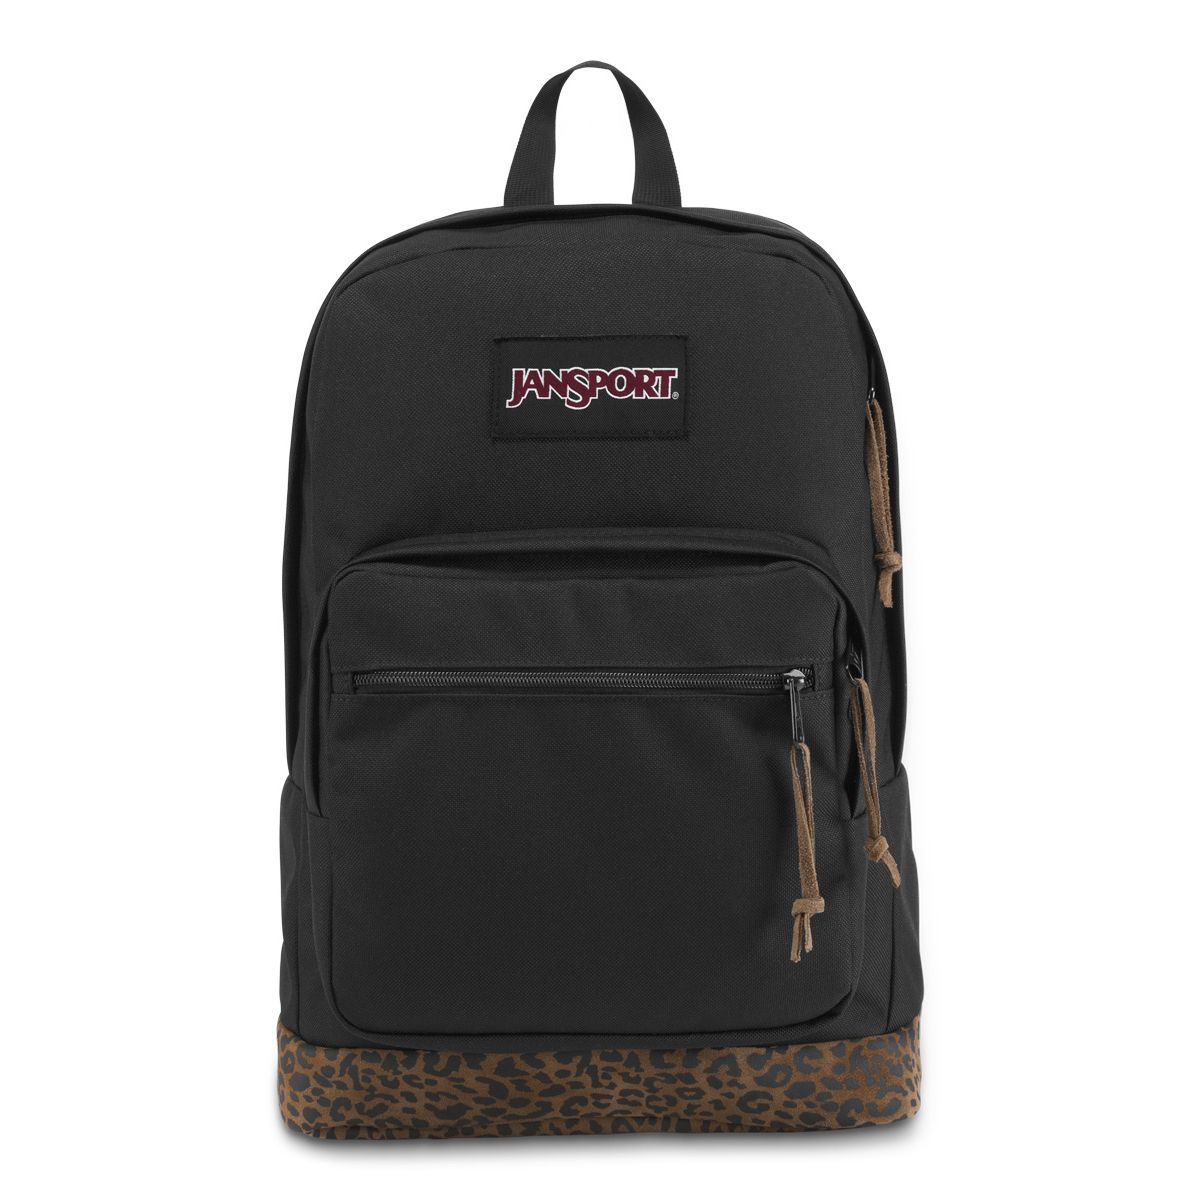 JanSport Right Pack Expressions Backpack in Leopard Boot